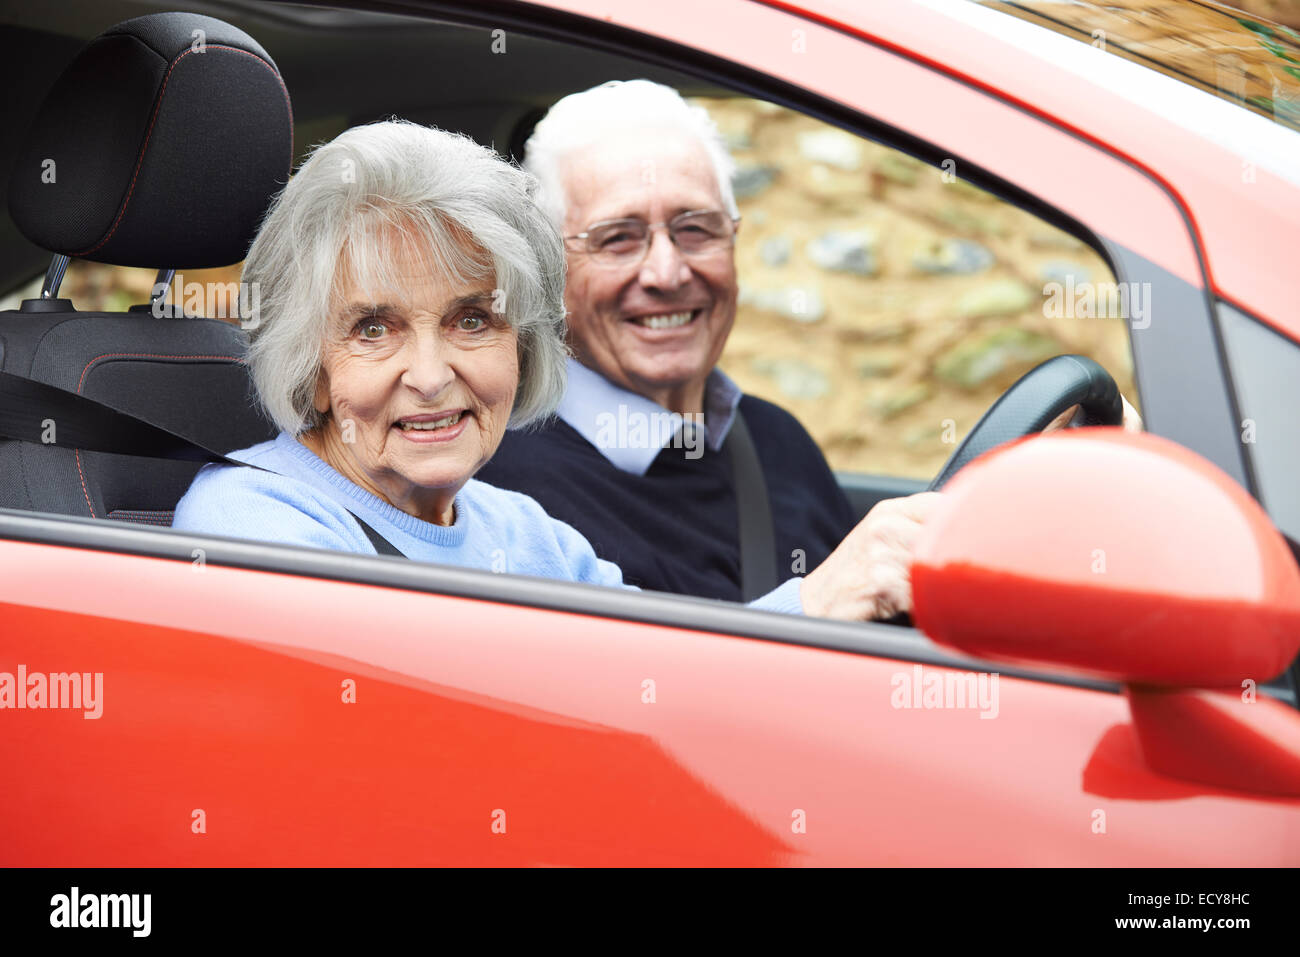 Portrait Of Smiling Senior woman out pour rouler en voiture Photo Stock